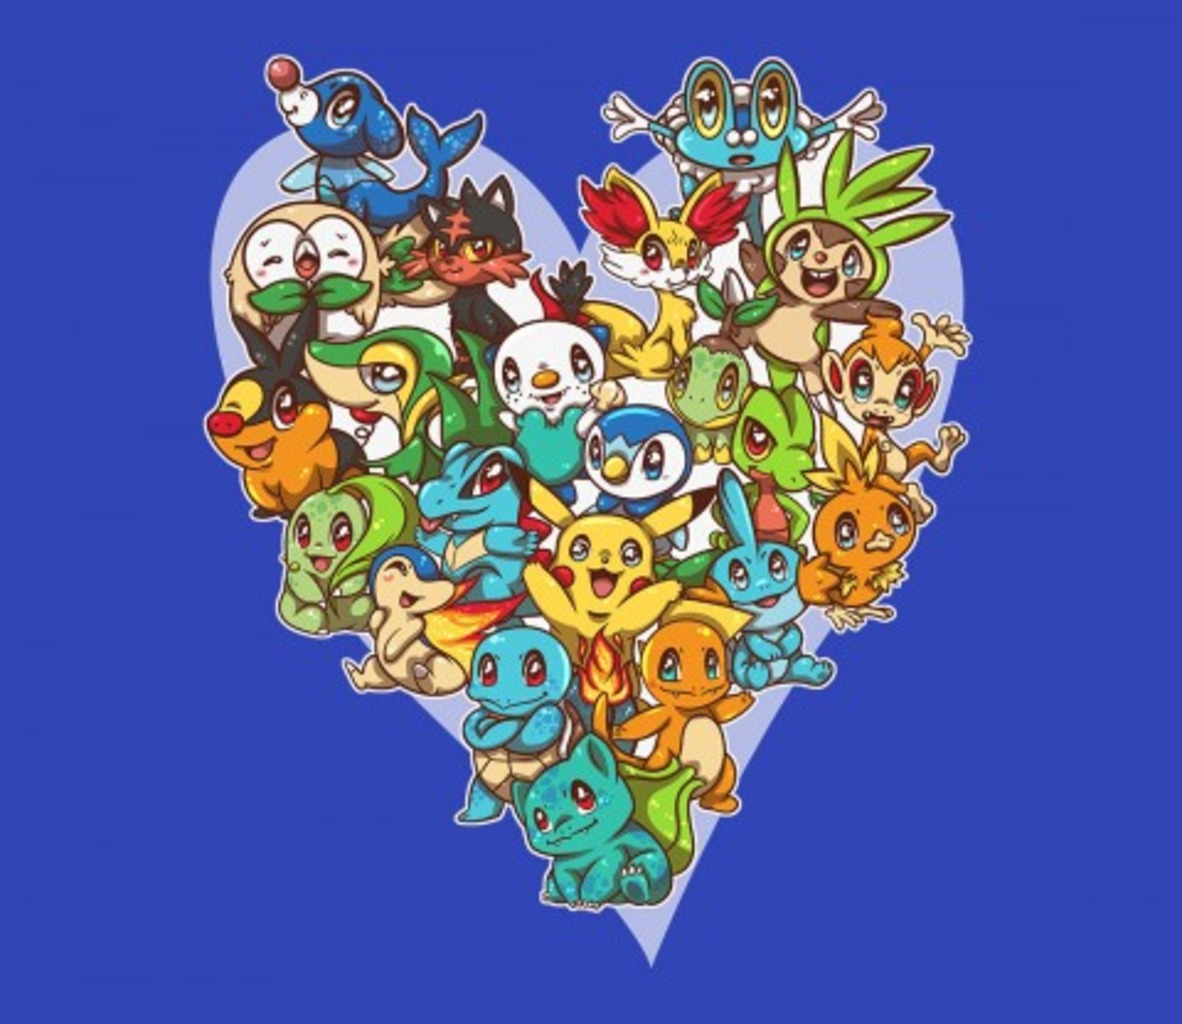 TeeFury: The Journey Begins With One